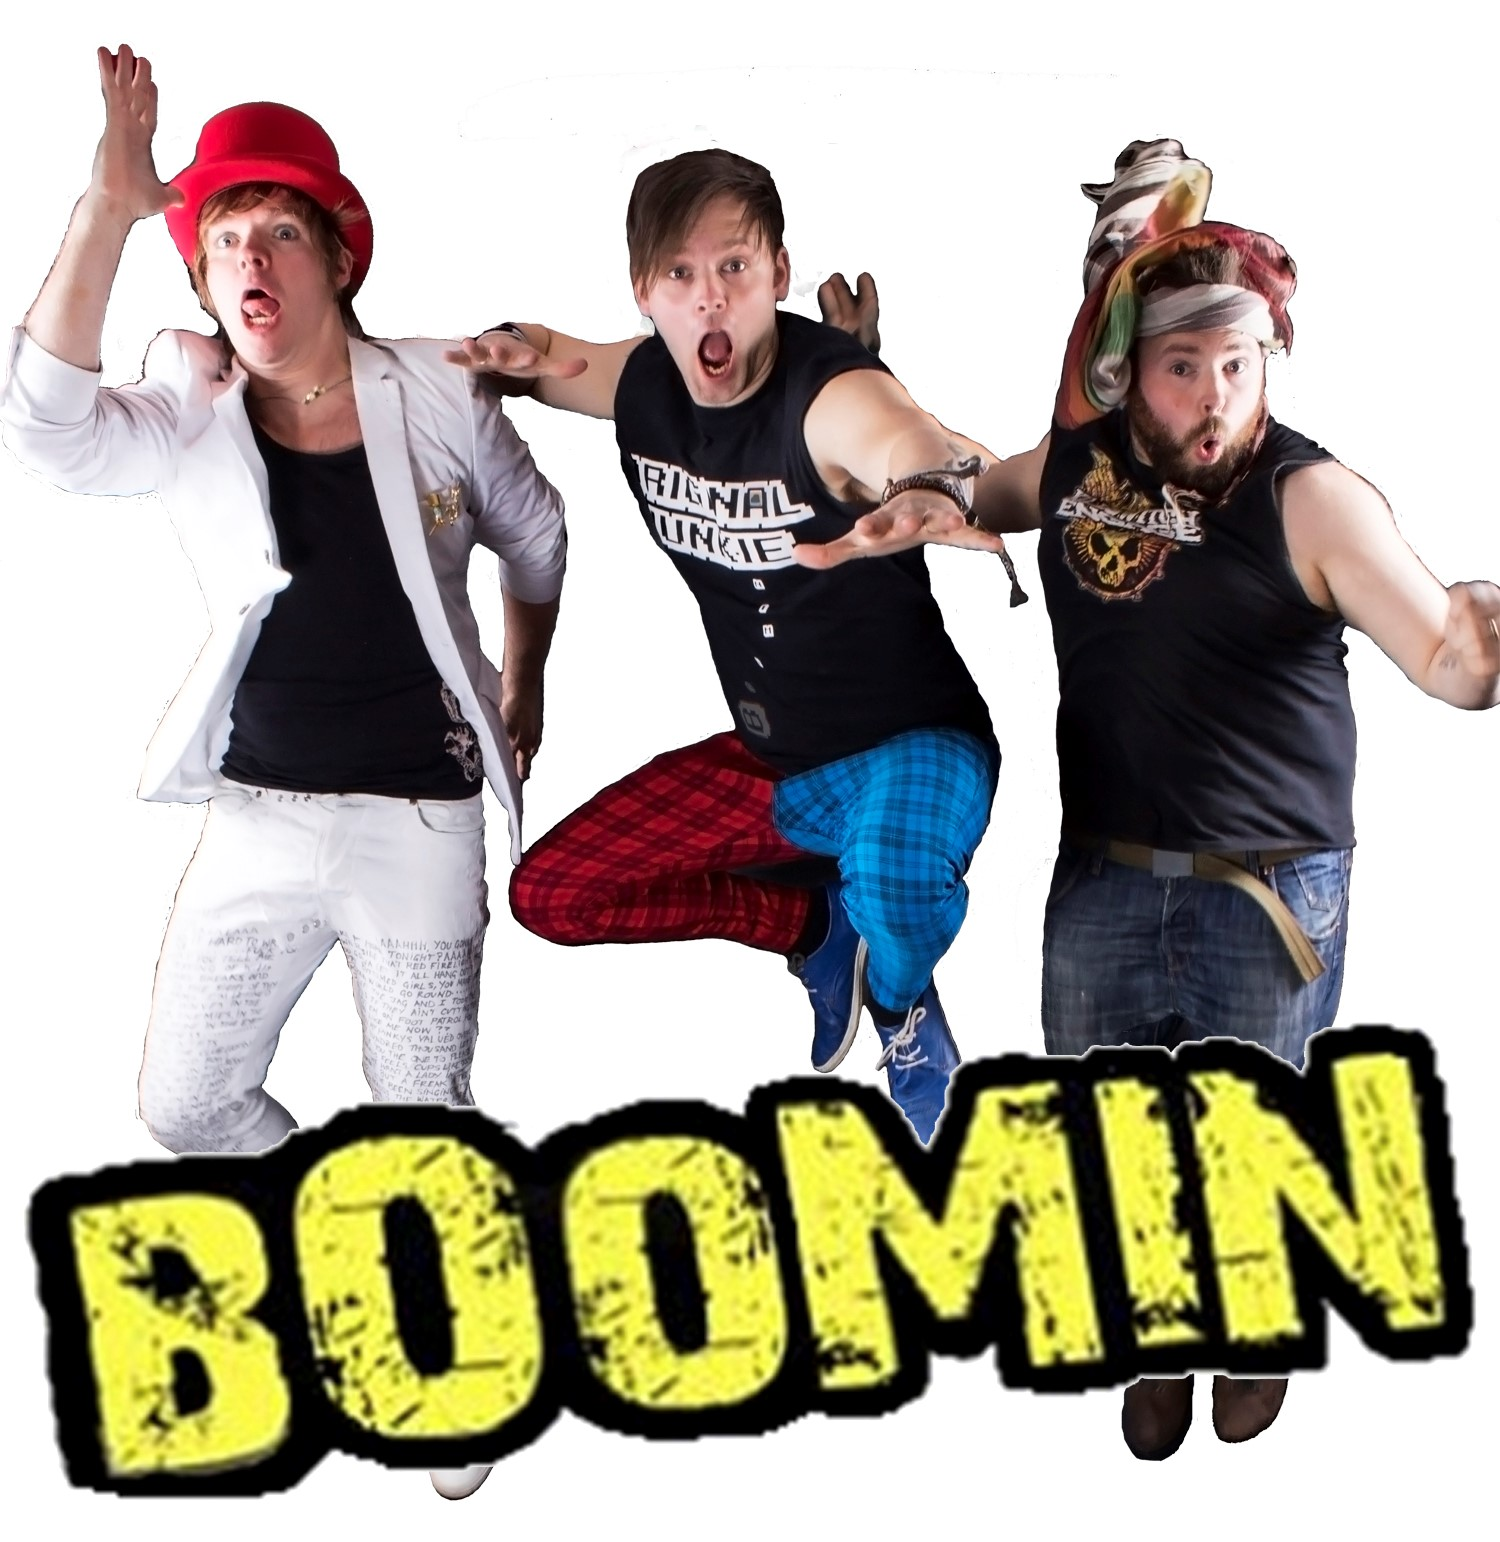 new-boomin-image